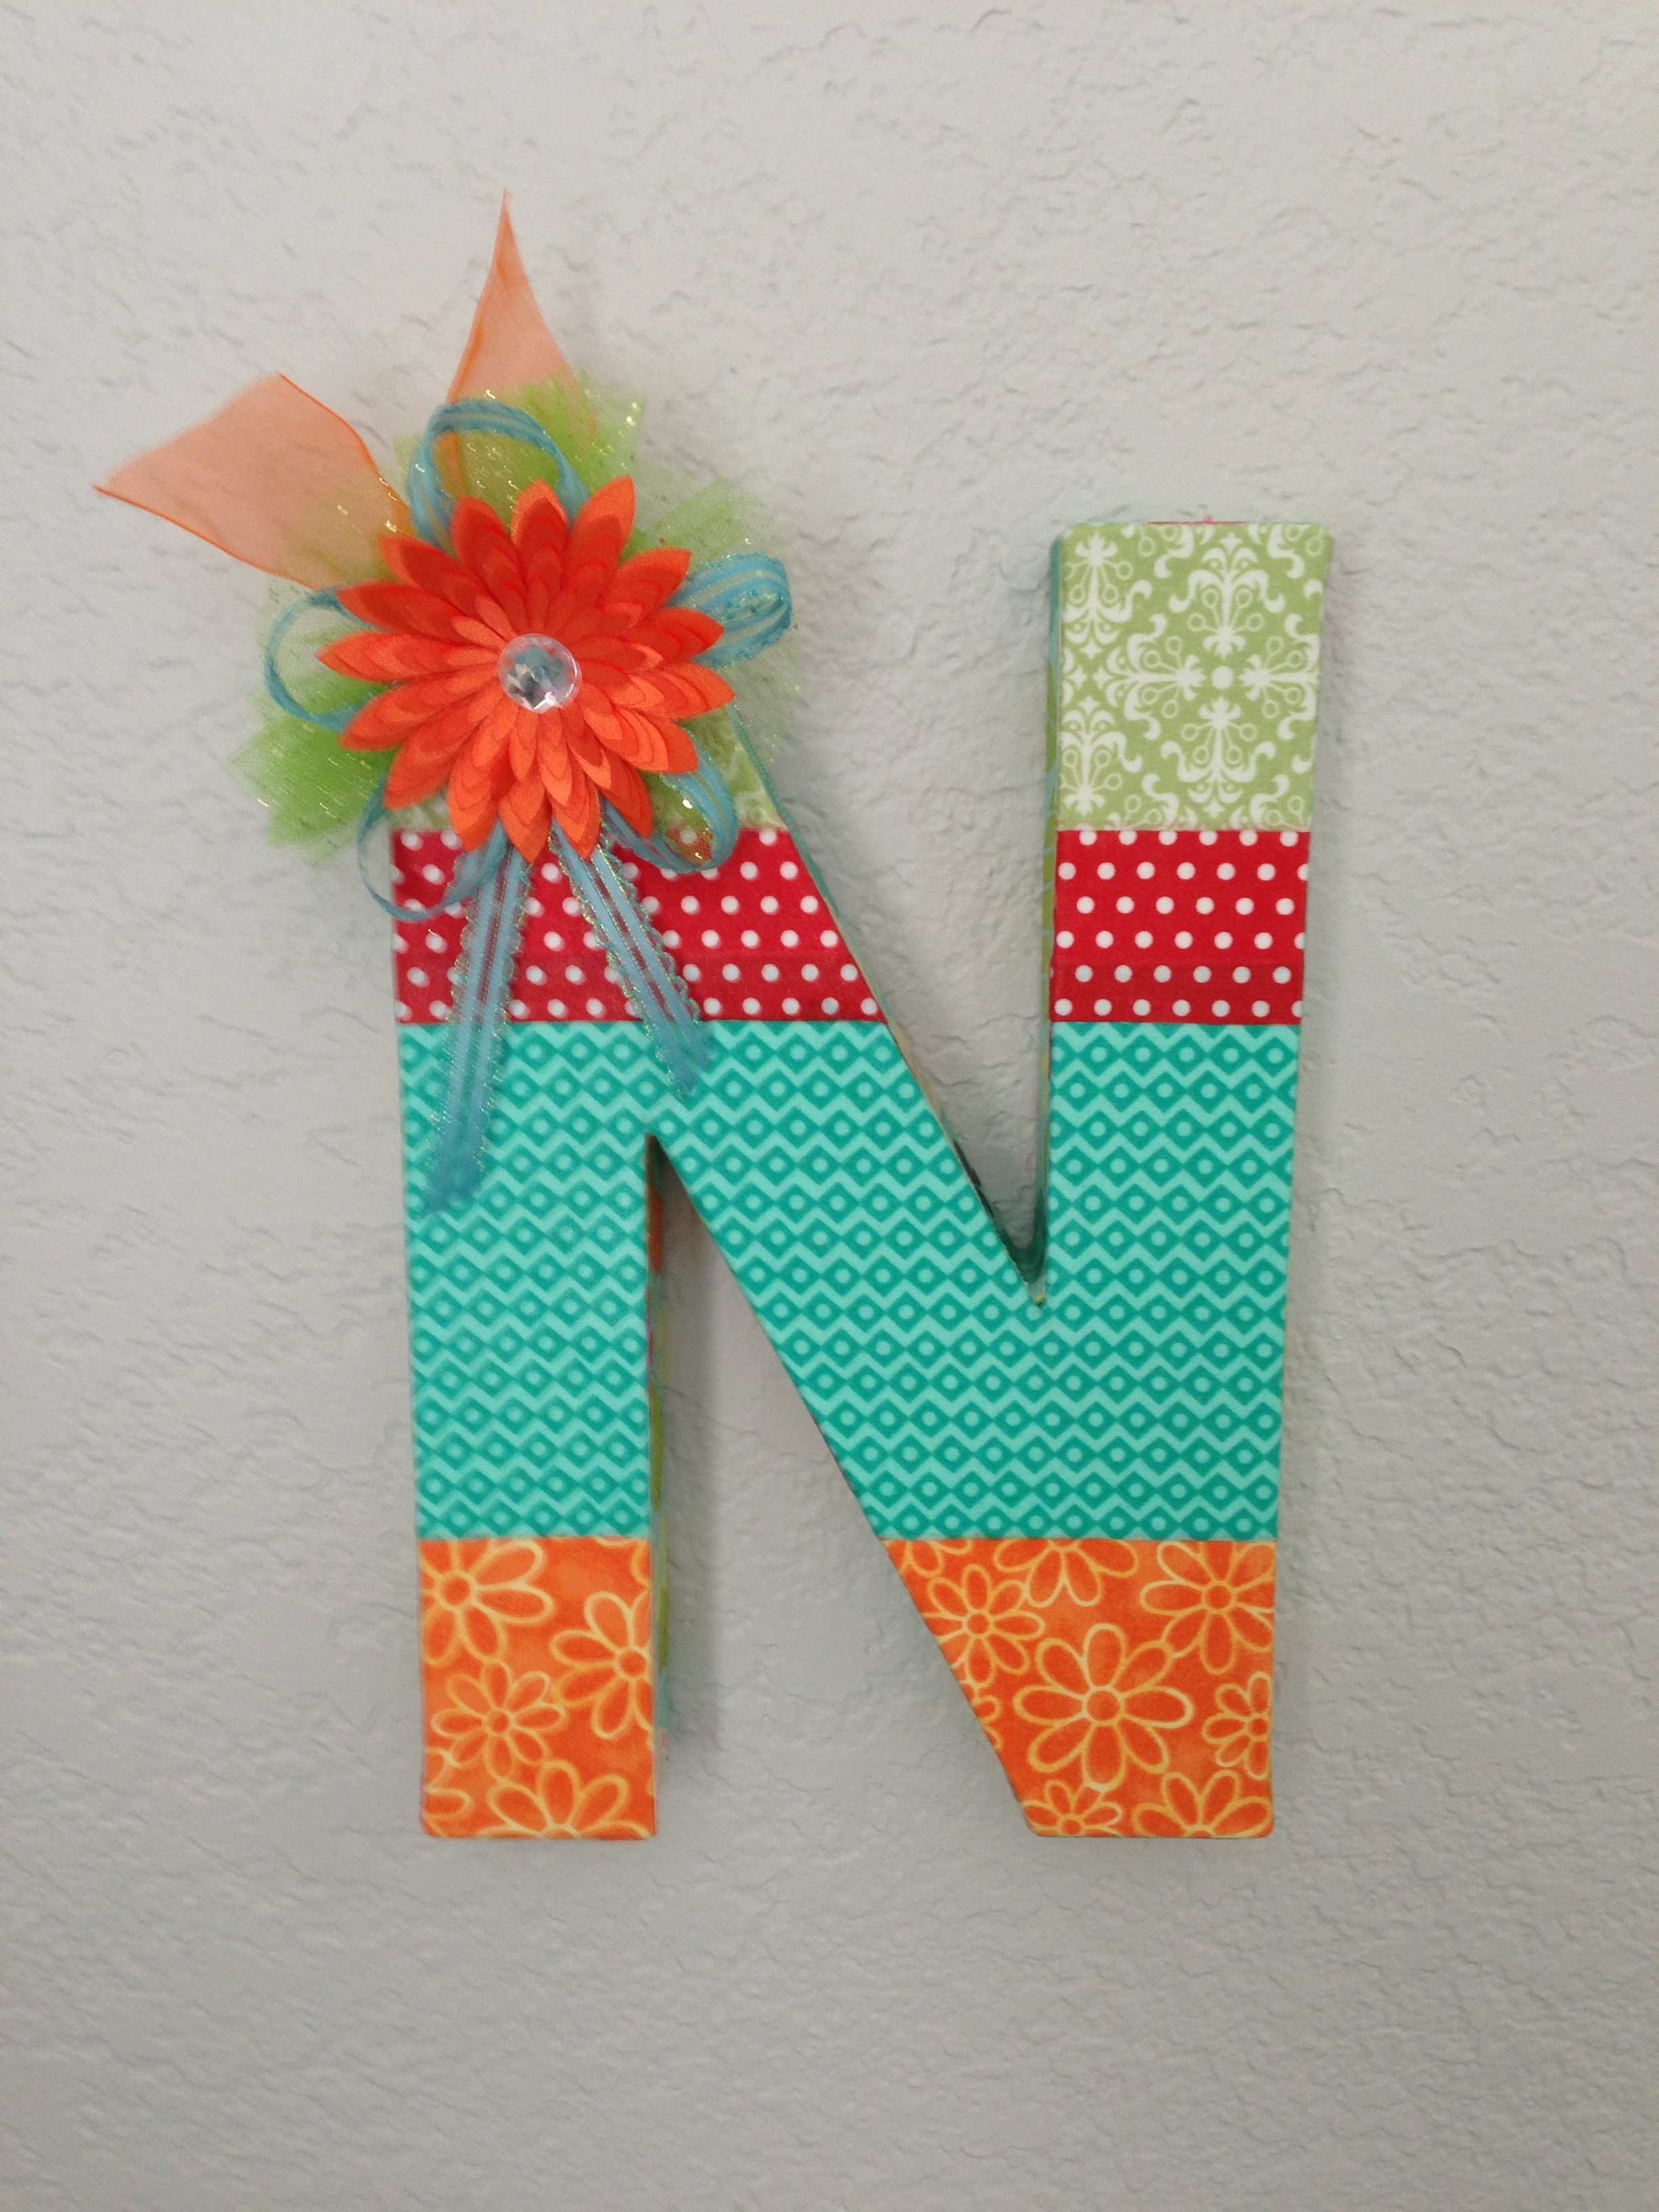 letter n wall decor Criedineassistant